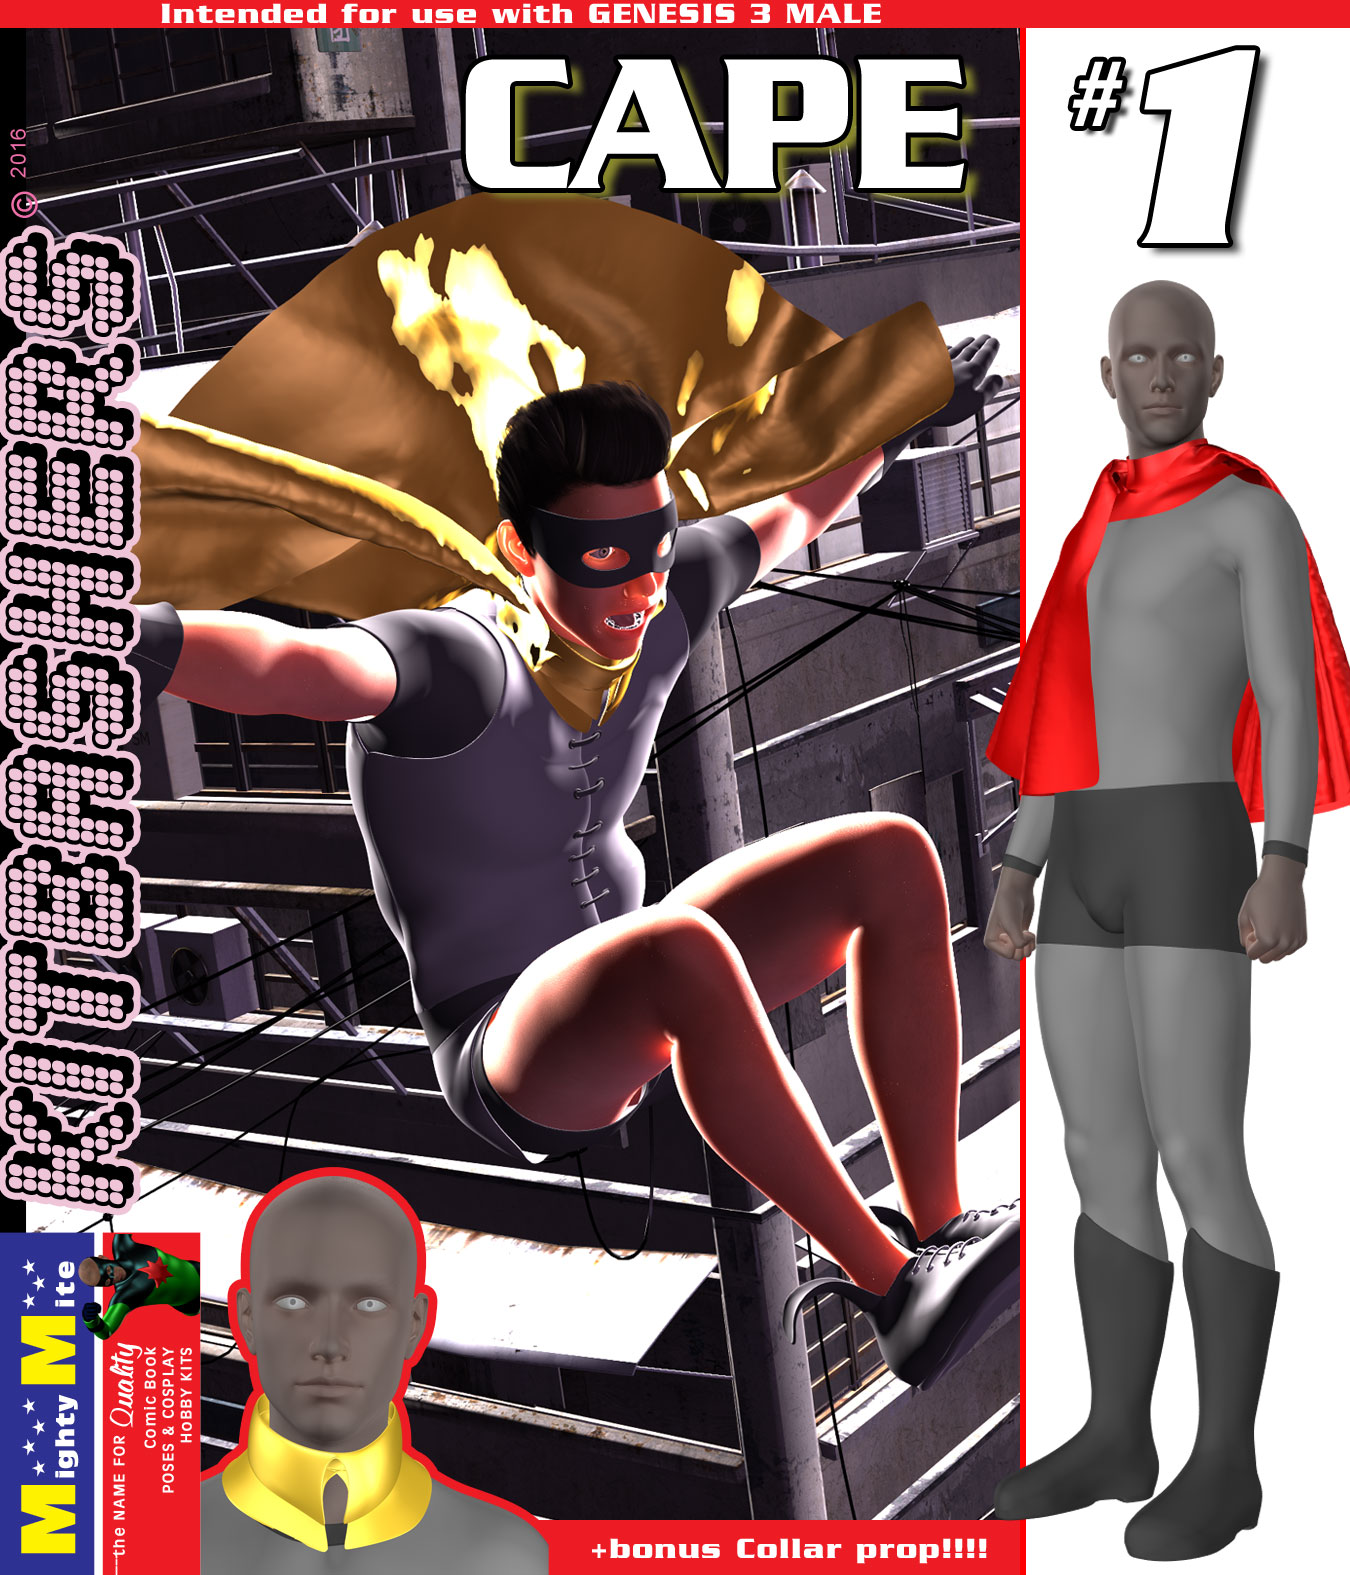 Cape 001 MMKBG3M by MightyMite